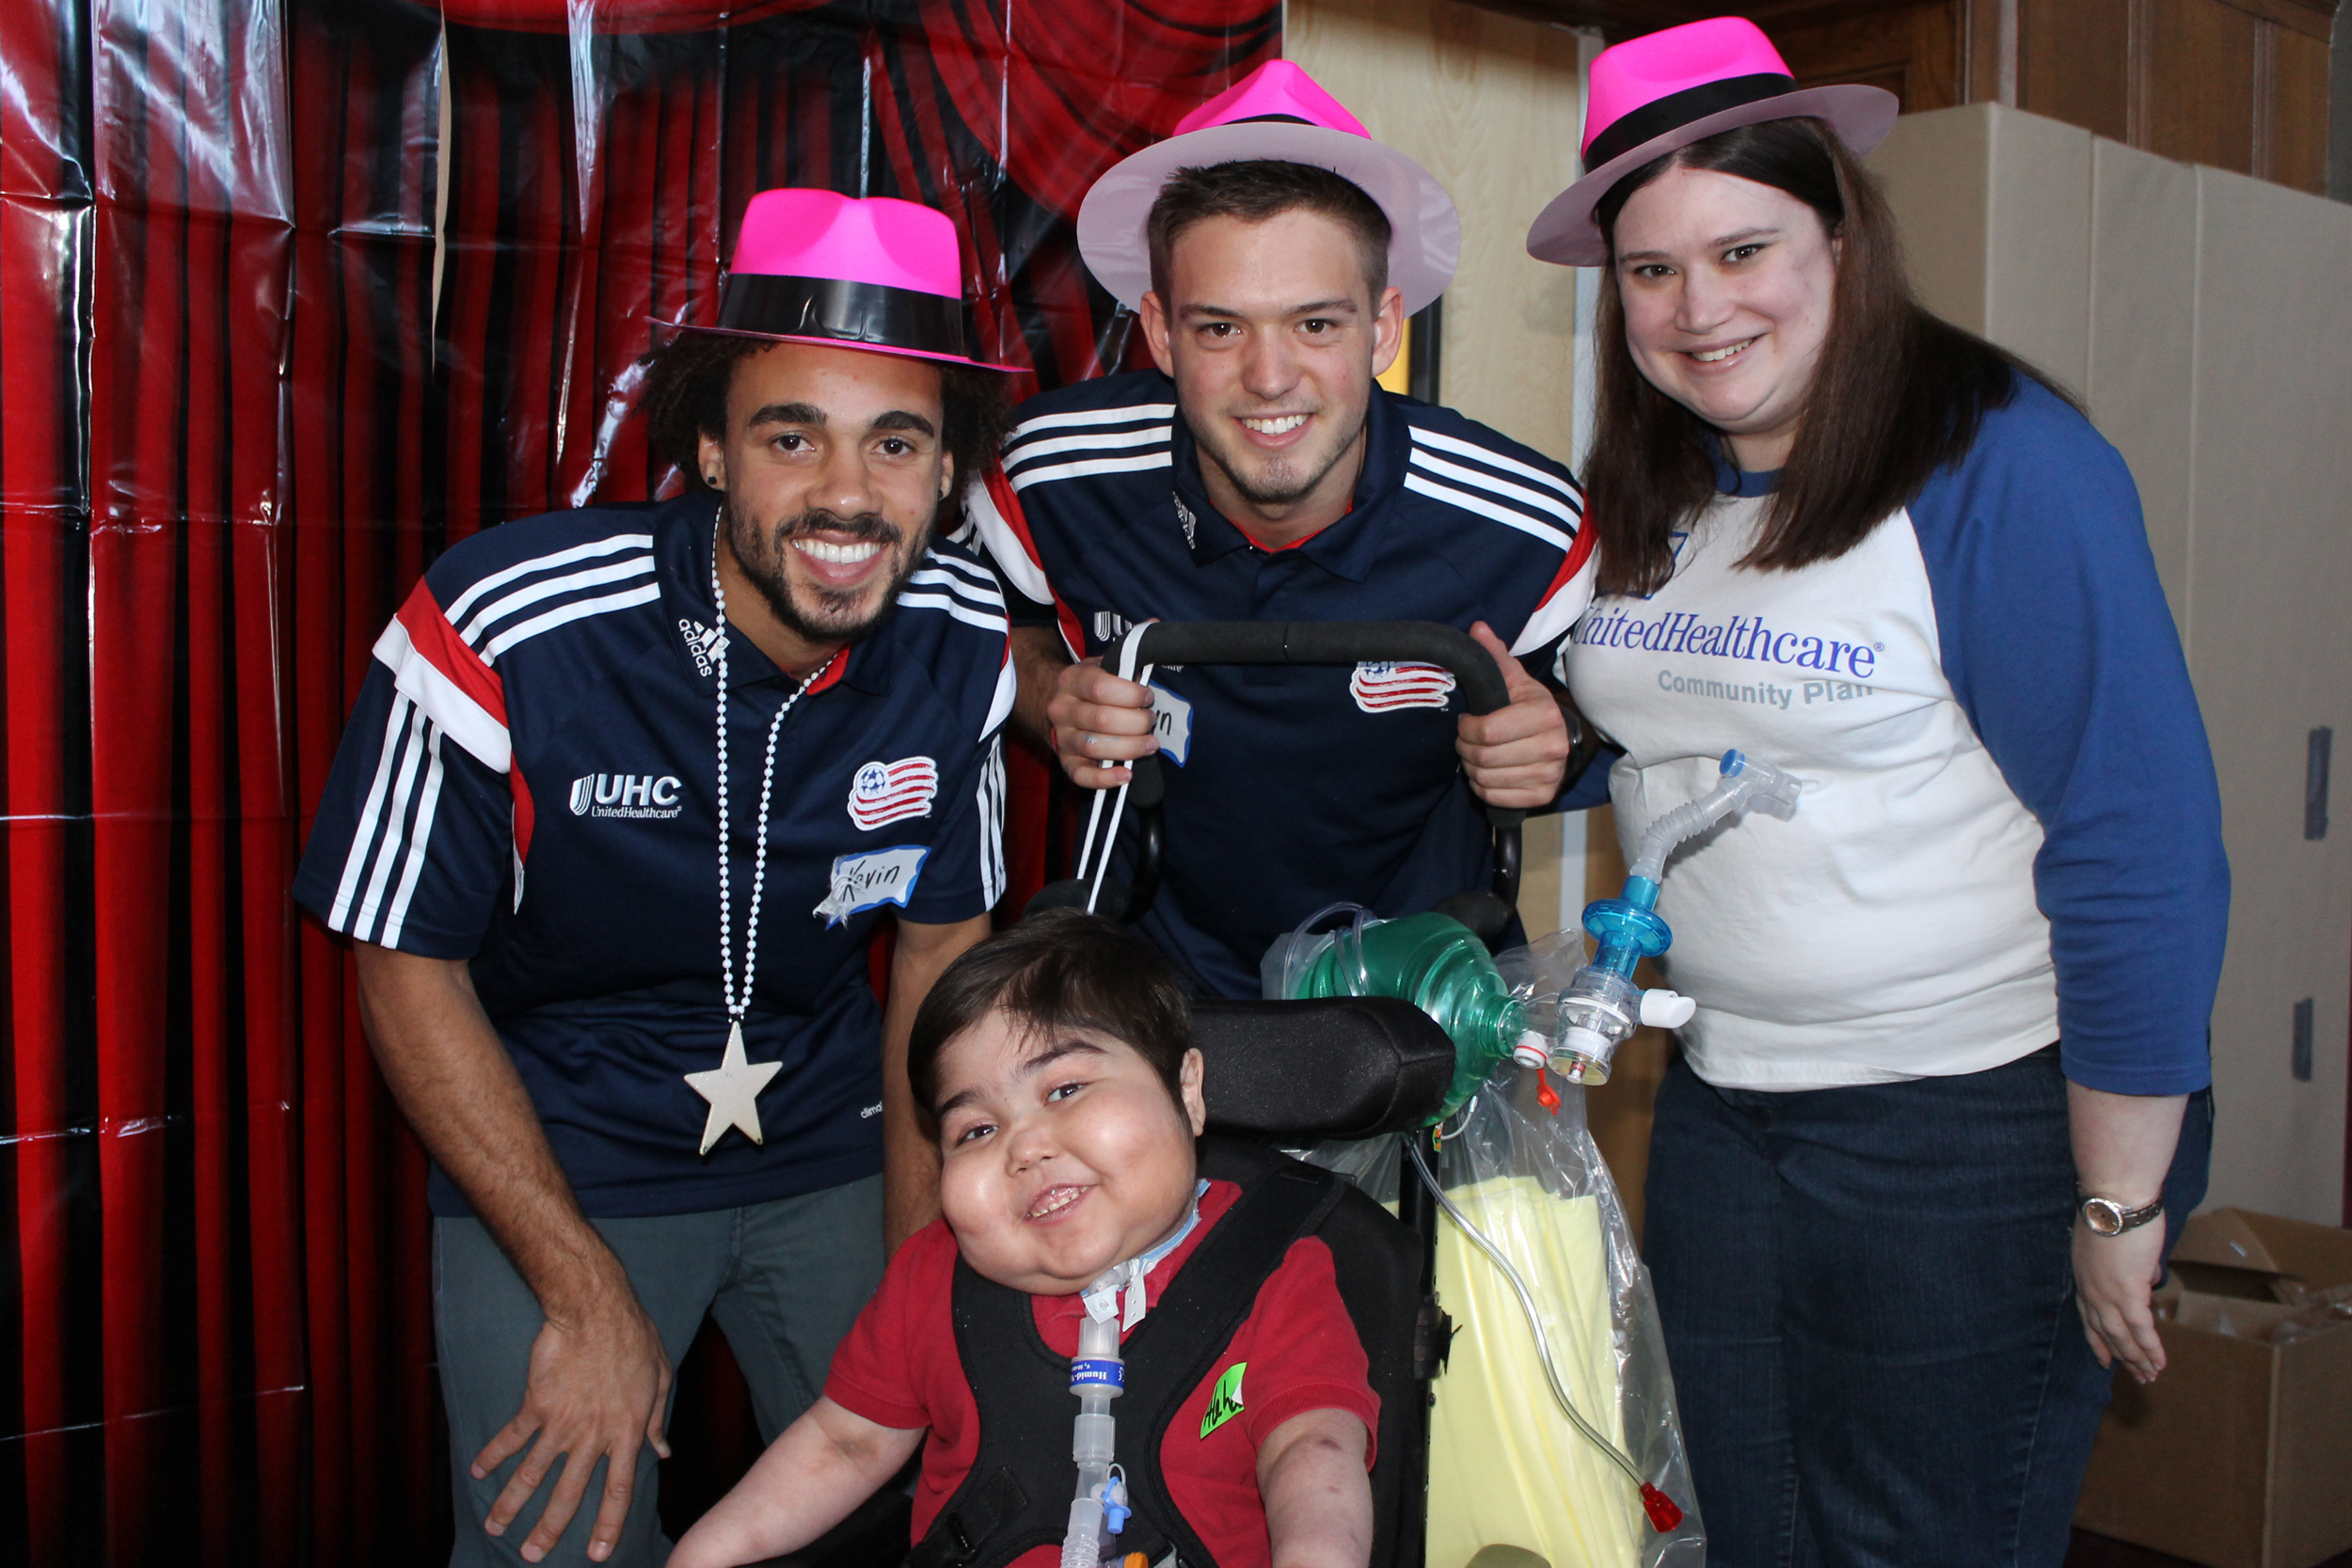 New England Revolution defender Kevin Alston and midfielder Kelyn Rowe pictured with patient of Franciscan Hospital for Children and Cynthia Mailhiot of UnitedHealthcare (Photo: Project Sunshine).